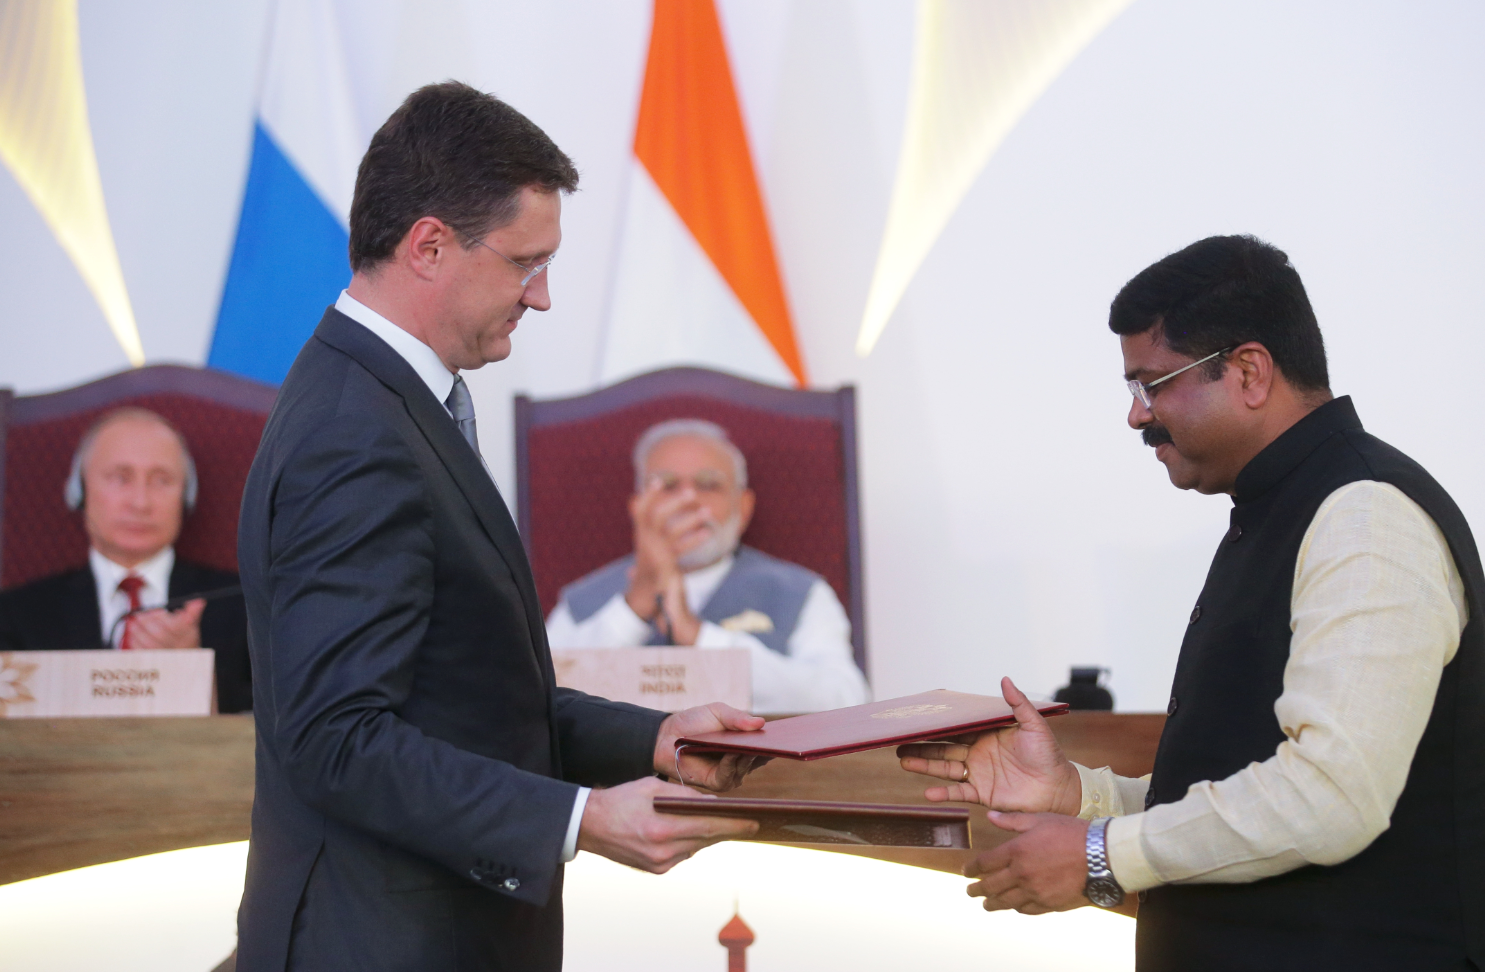 Alexander Novak and Dharmendra Pradhan at the ceremony of signing documents following Russian-Indian talks in Goa, 2016. Source: Mikhail Metzel/RIA Novosti